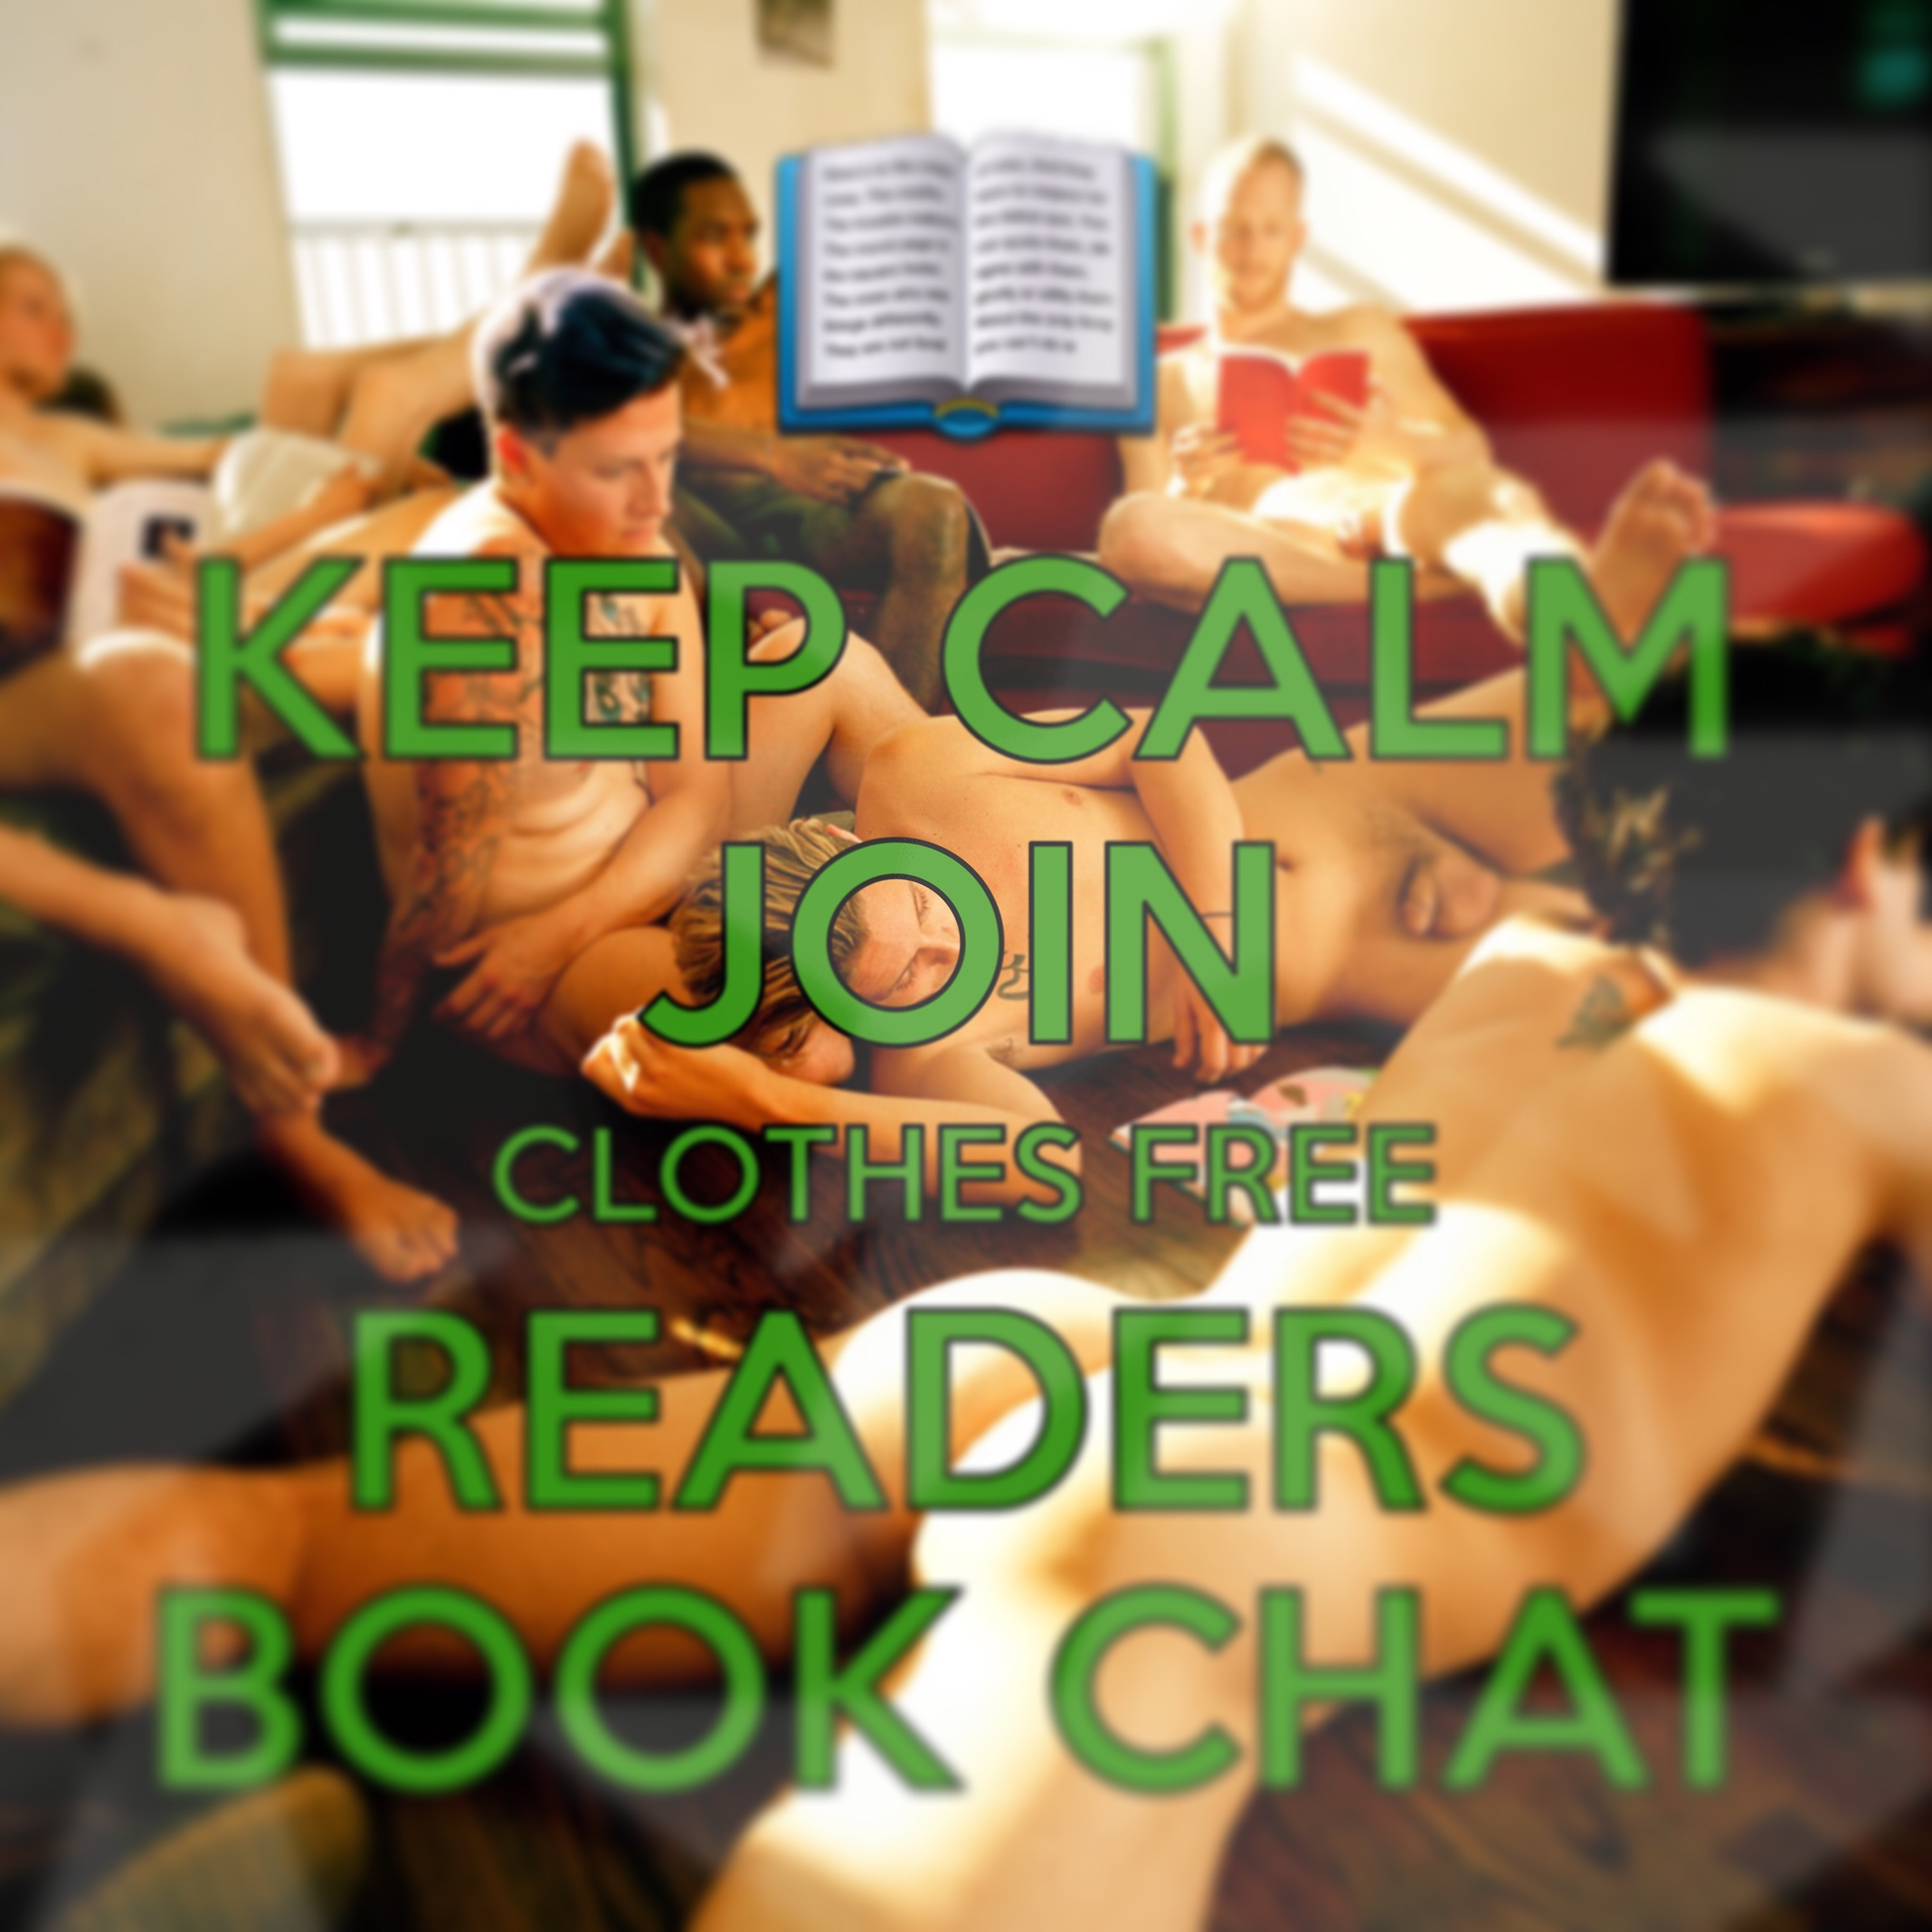 Free nudist chat